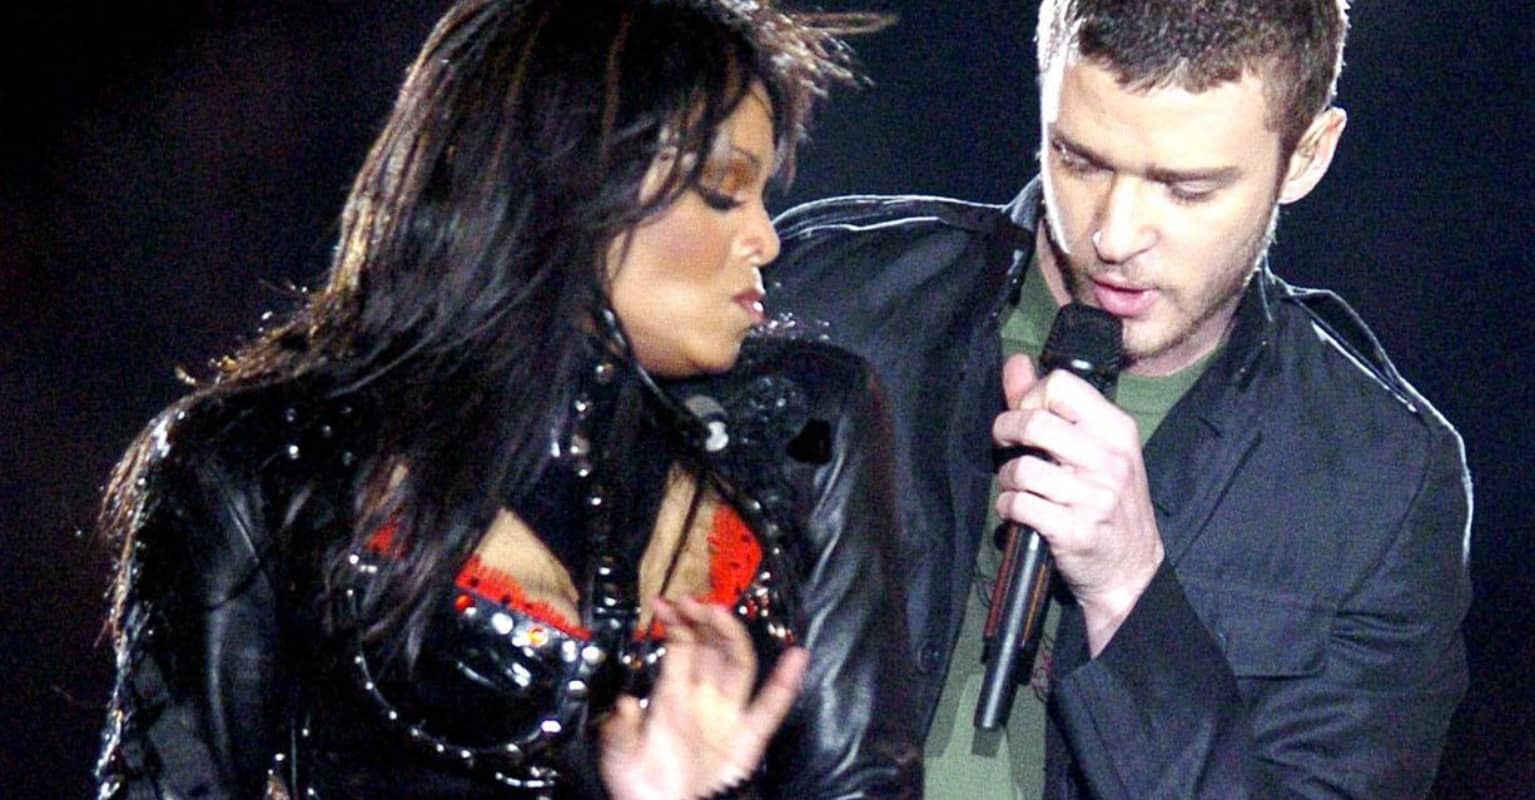 Tearful Janet Jackson breaks silence after Justin Timberlake apologises for 2004 Super Bowl controversy: 'Thank you'